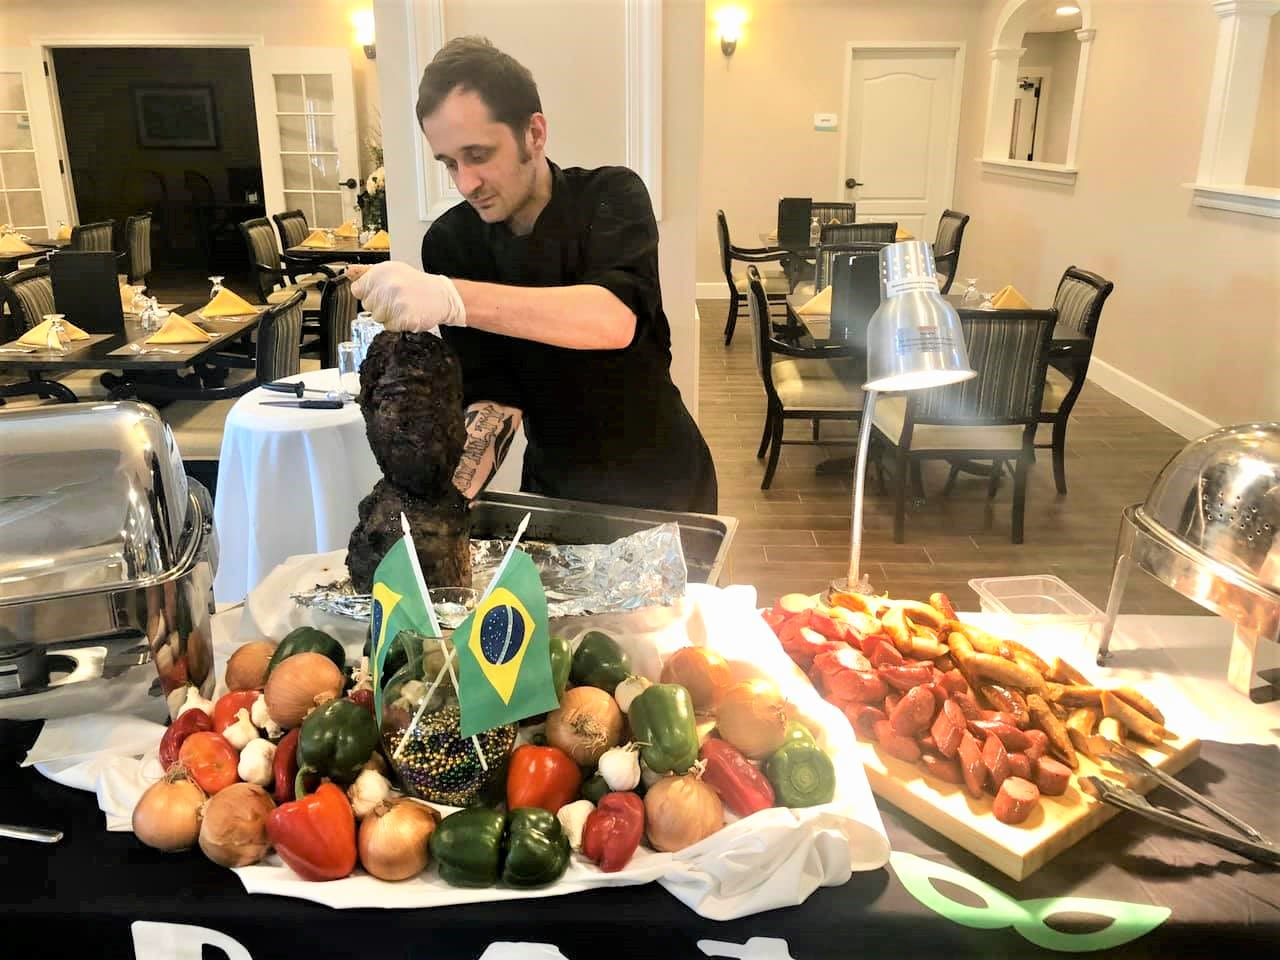 Chef making Brazilian meals at Inspired Living Lewisville in Lewisville, Texas.